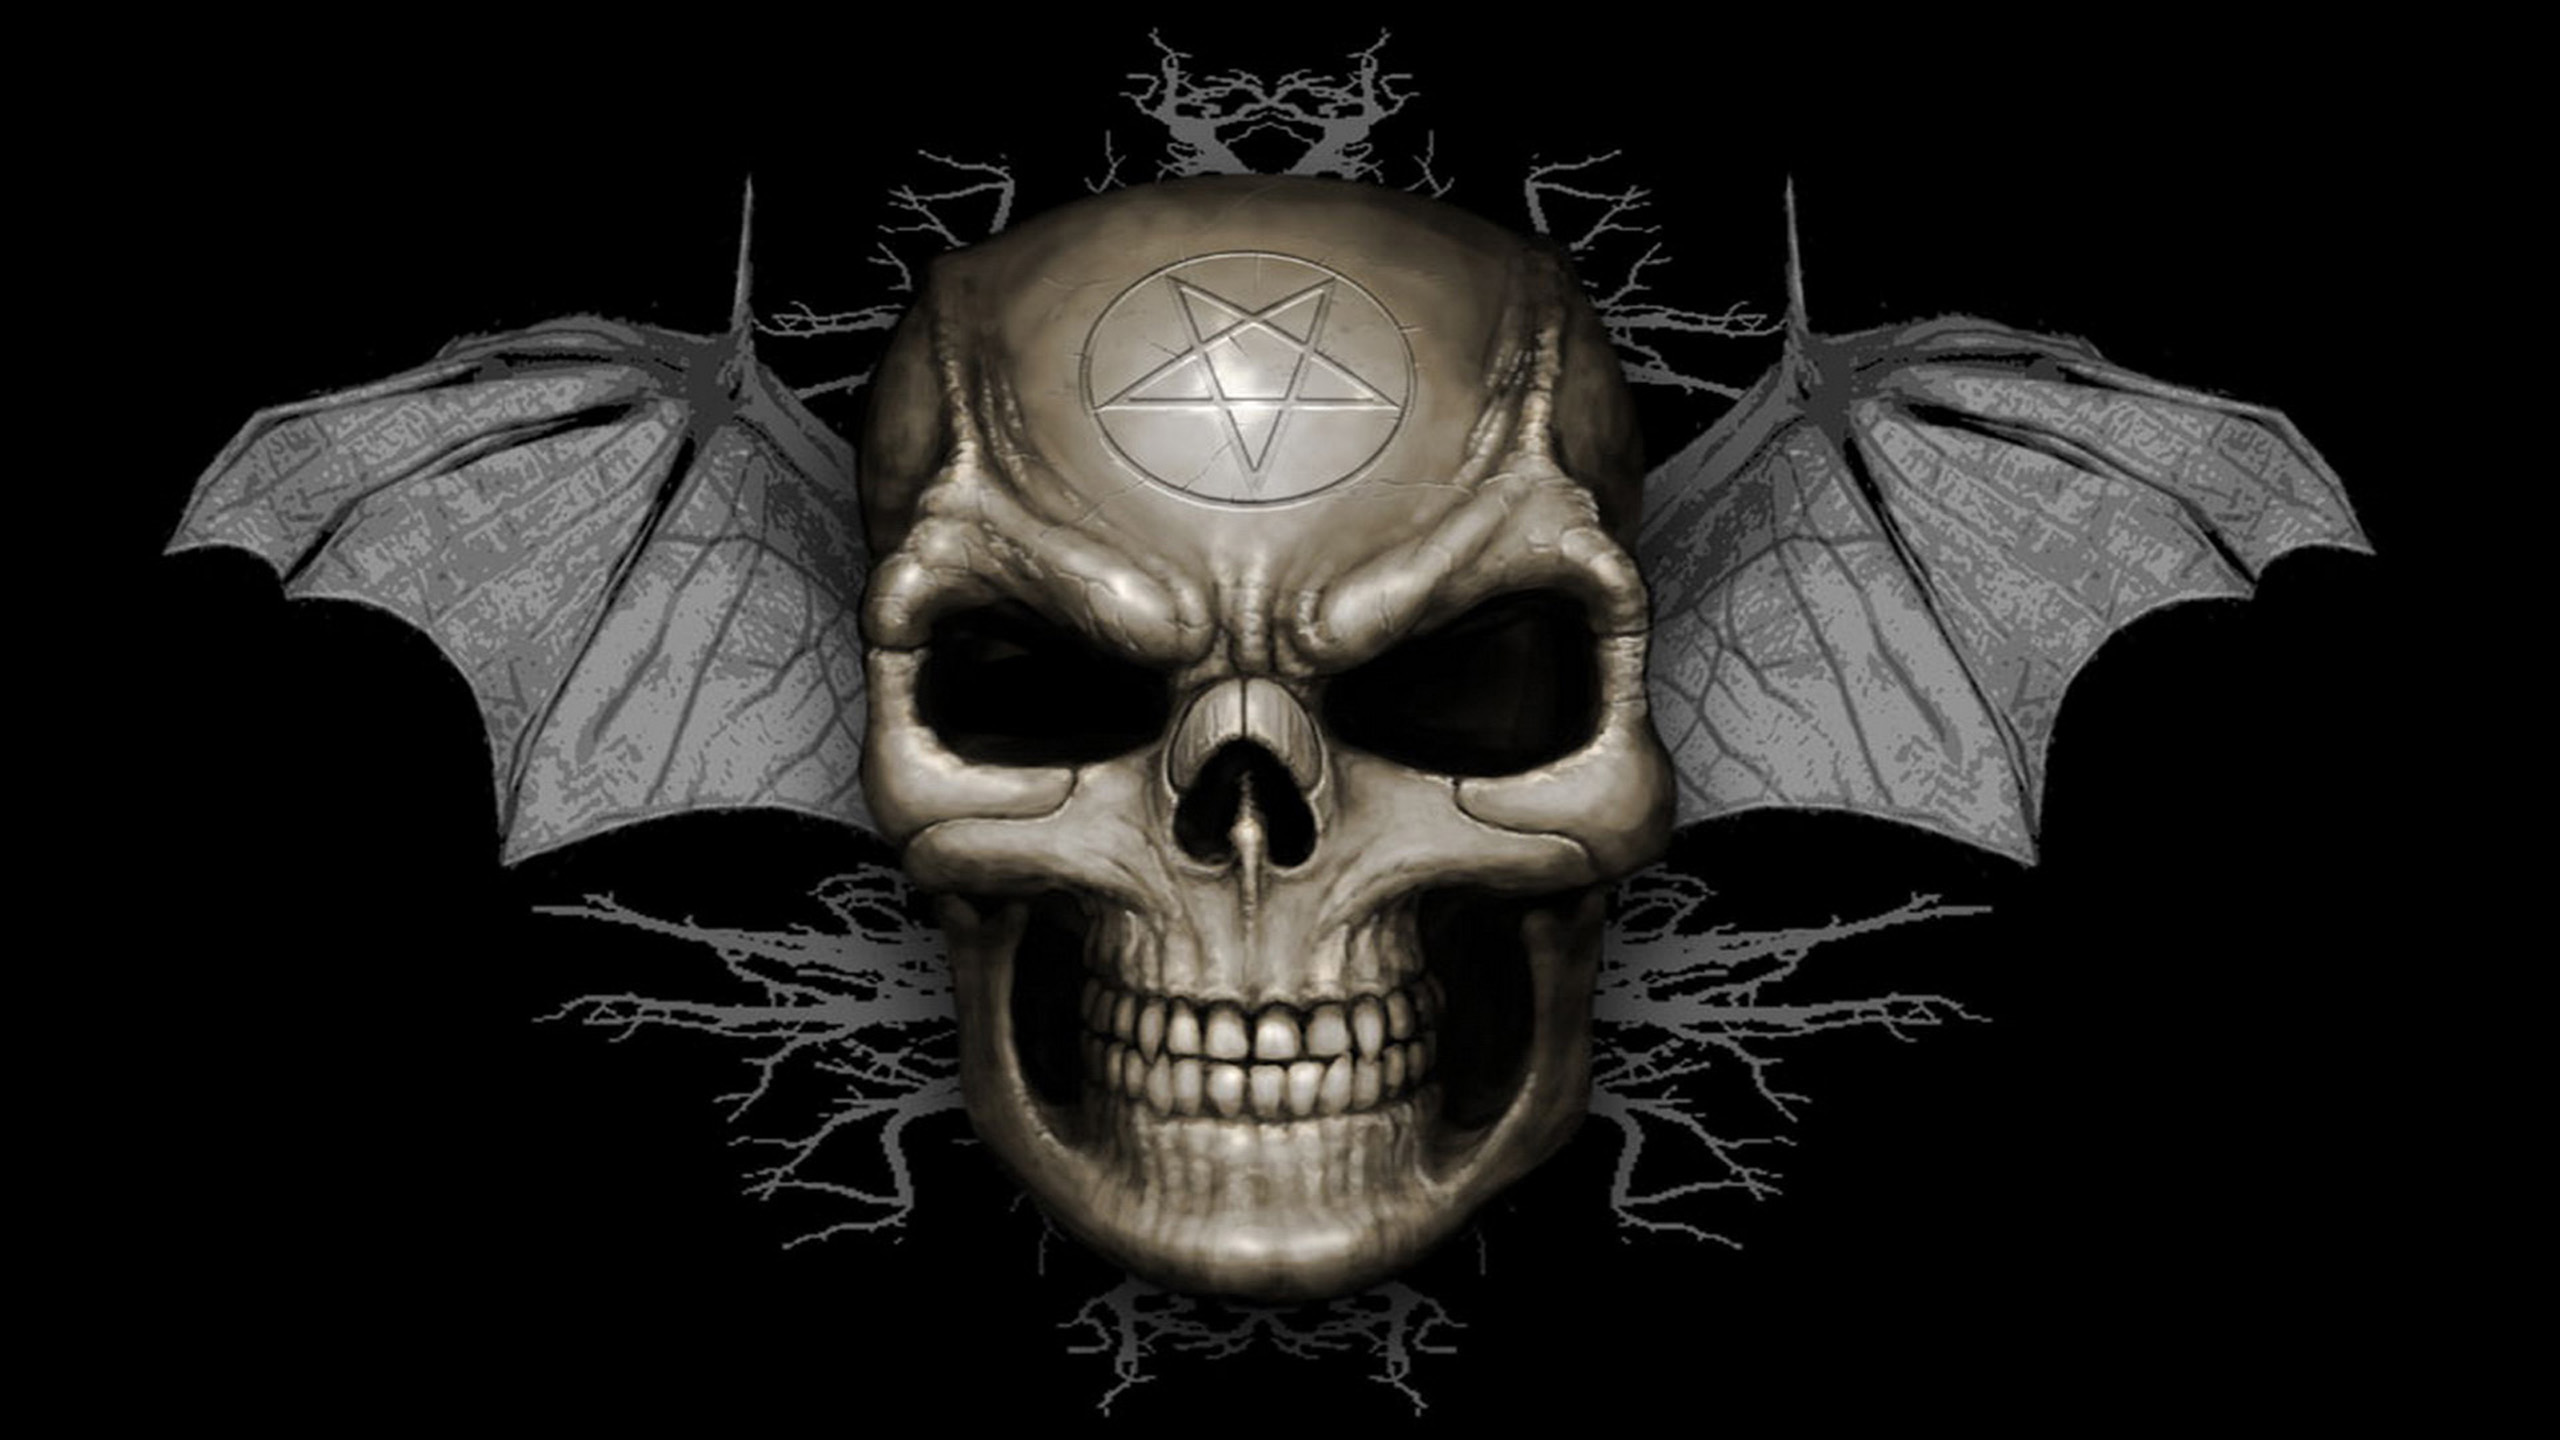 Skull soldier wallpaper hd wallpapersafari - Devil skull wallpaper ...